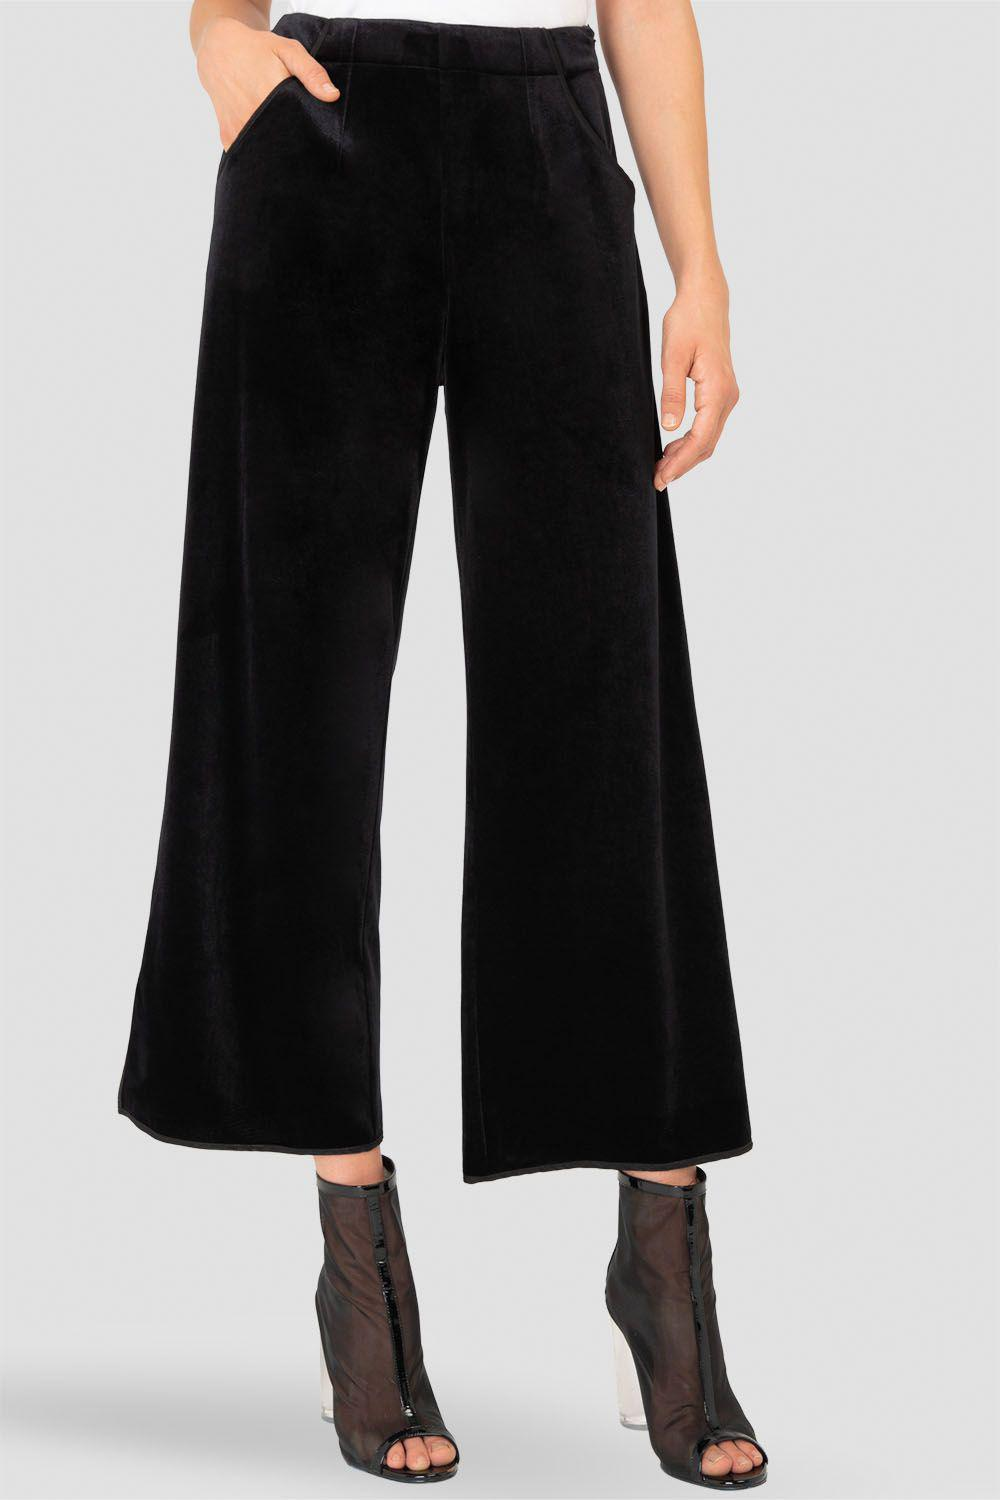 Libby Stretch Velvet Crop Wide Leg Pant With Slash Pkt And Side Vent